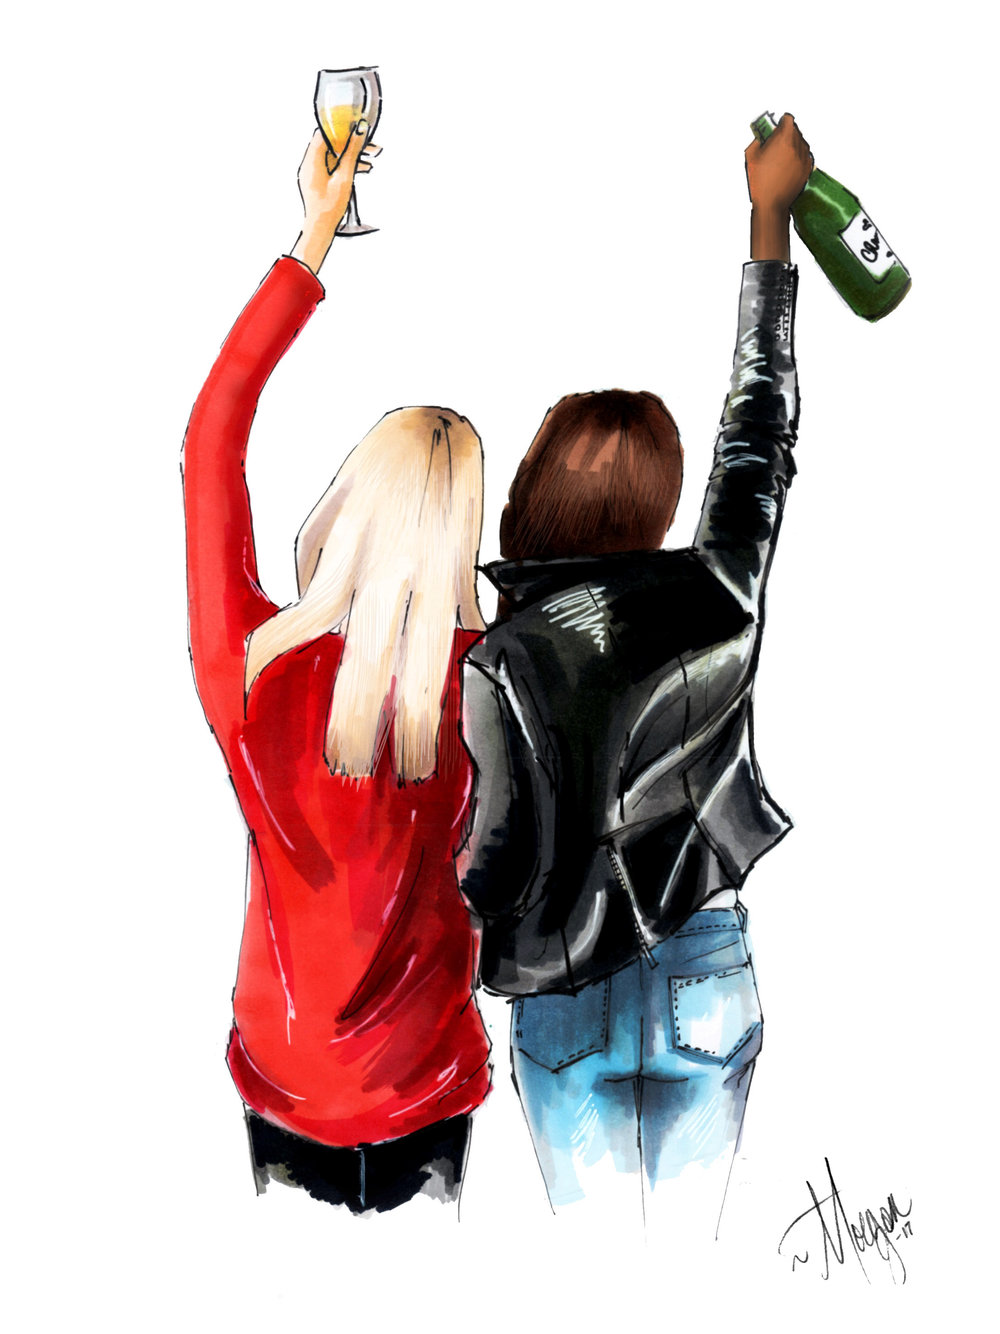 cheers-illustration-morgan-swank-studio.jpg